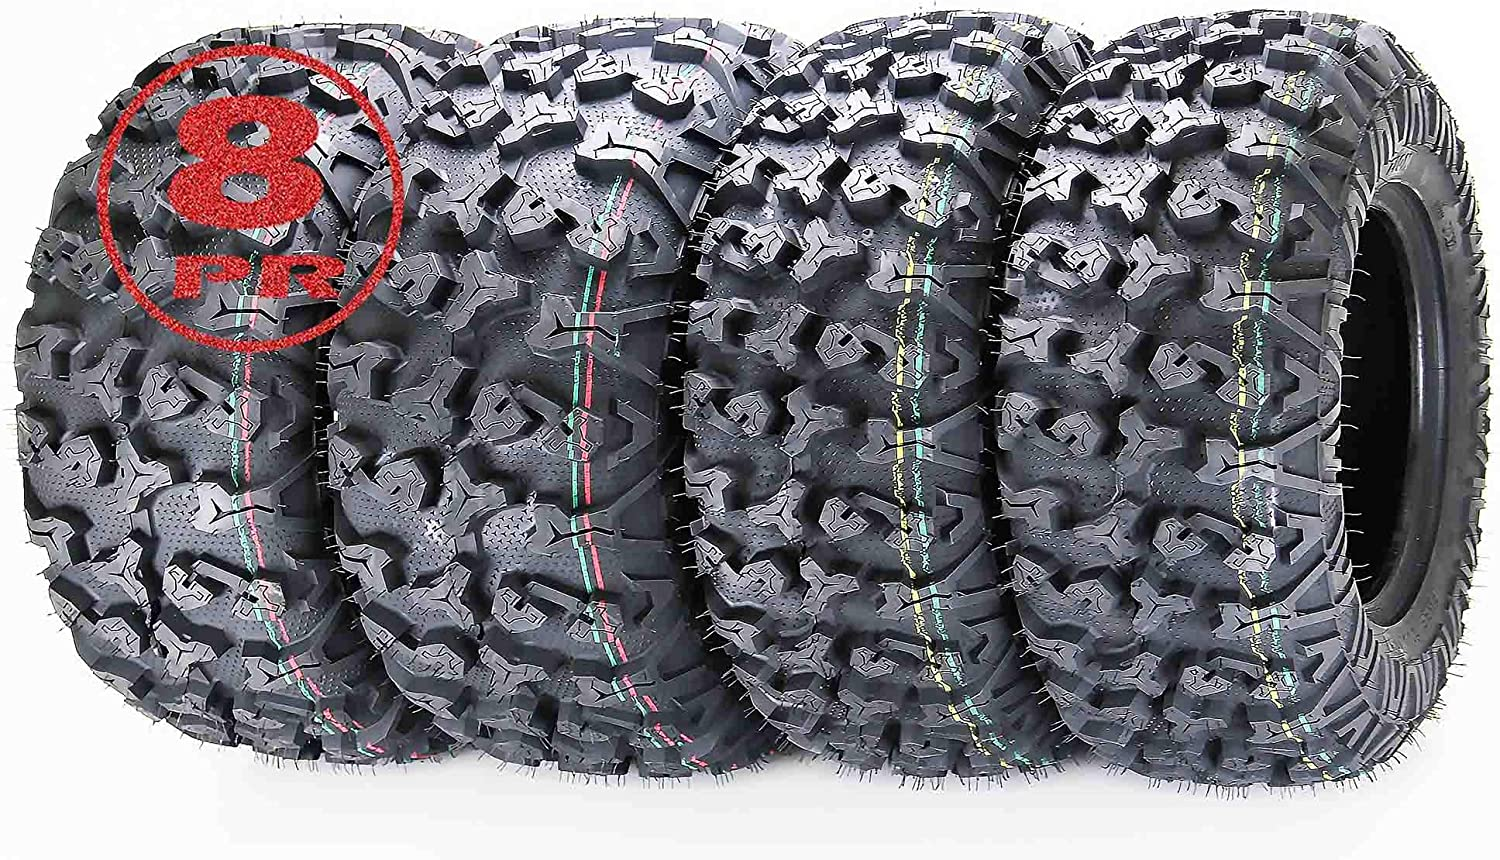 FREE COUNTRY Set 4 Premium ATV 25x11-12 w Tires Year-end annual account Si 8PR 25x8-12 Direct sale of manufacturer